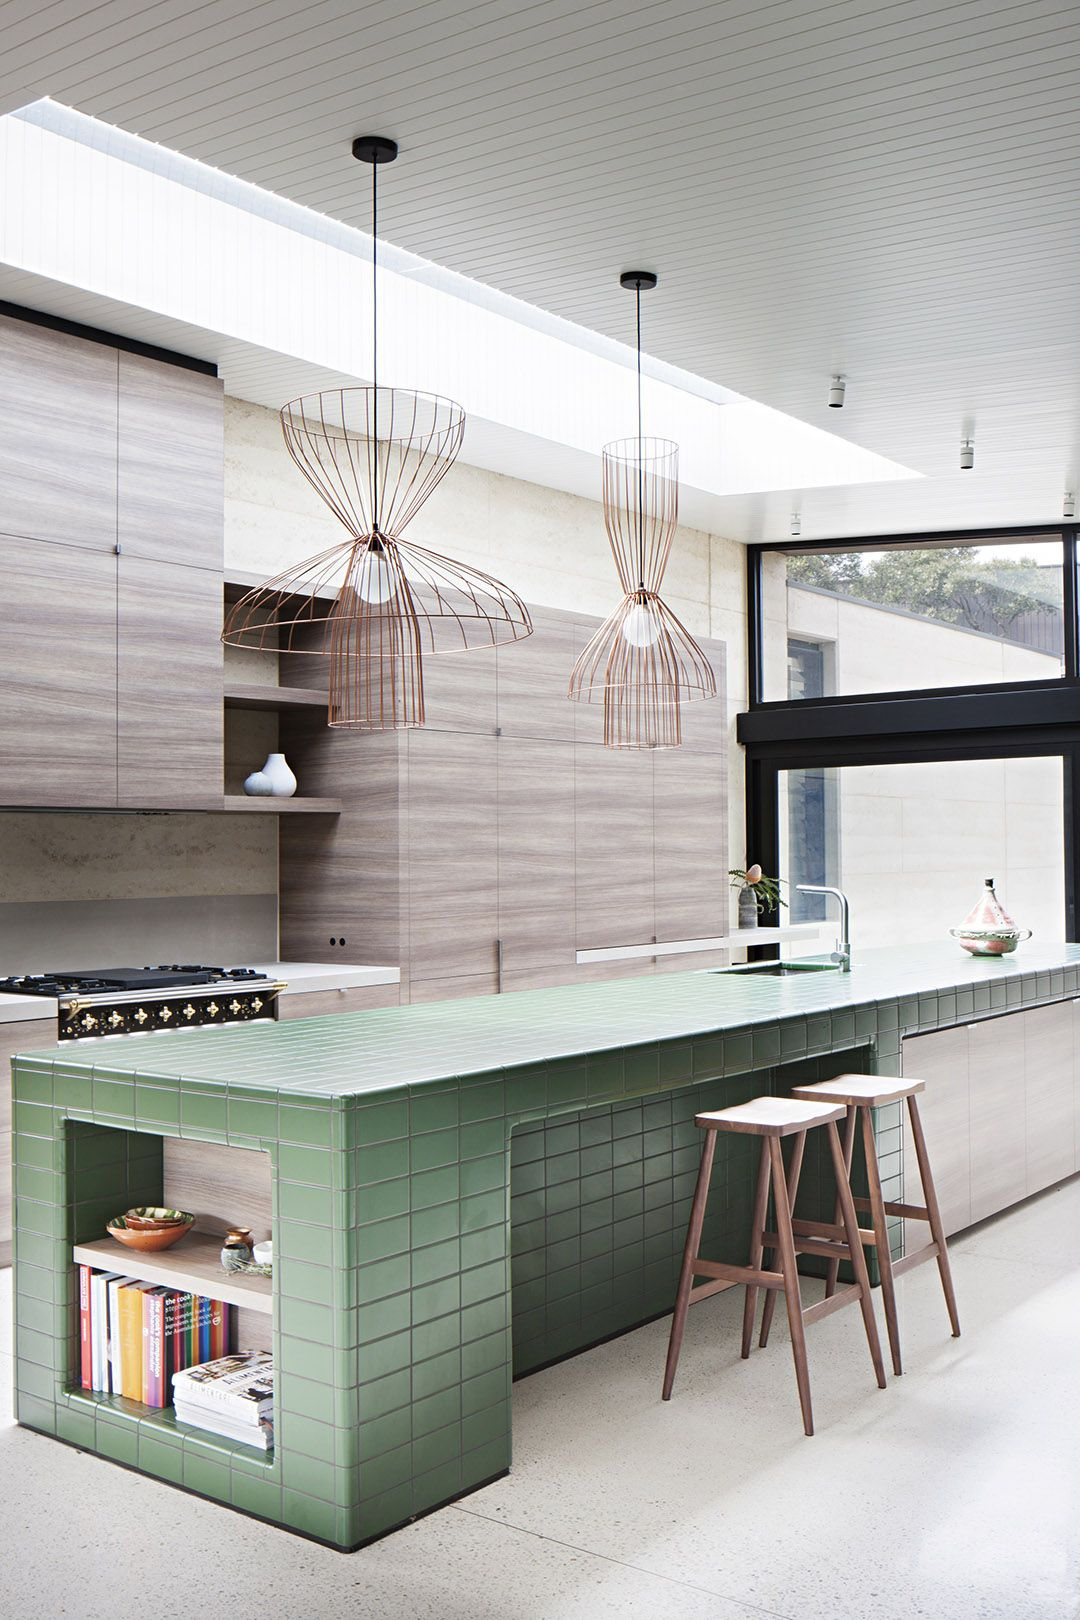 Offene Küche Gefliest Inspiring Family Home With A Green Tiled Kitchen Küche Modern